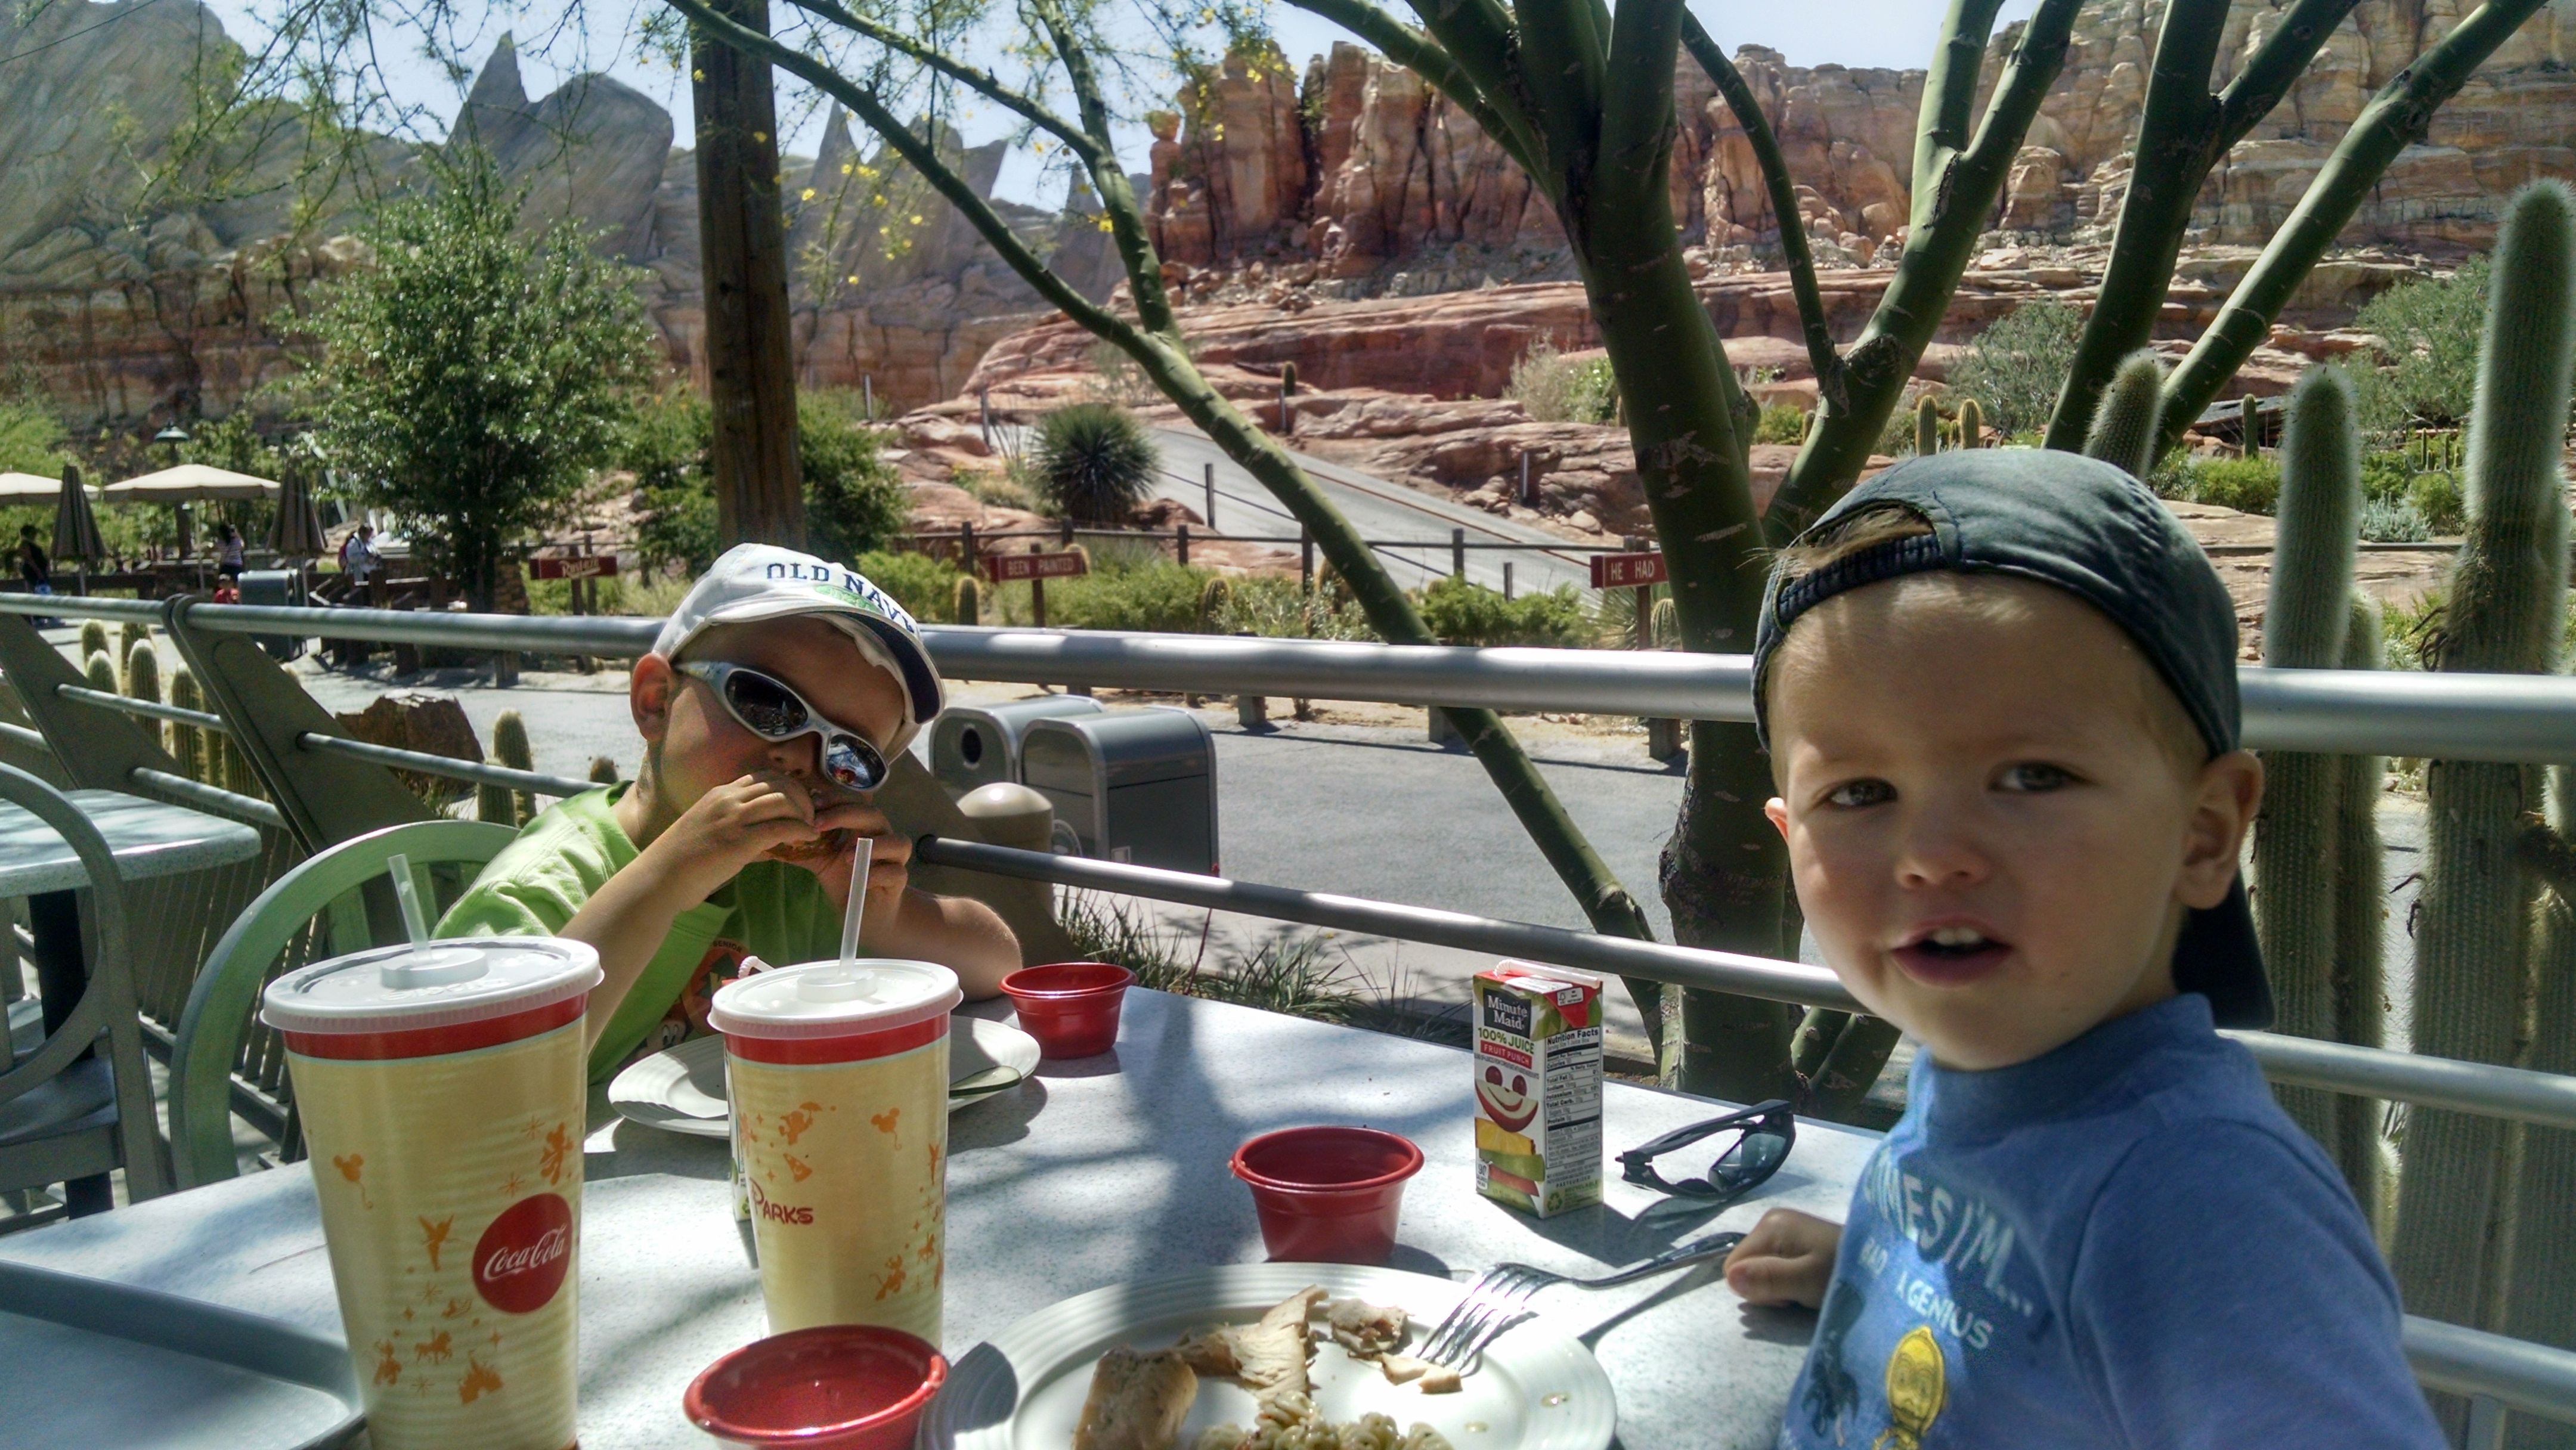 Mouseplanet - Day Trip With Littles: Disneyland or Disney